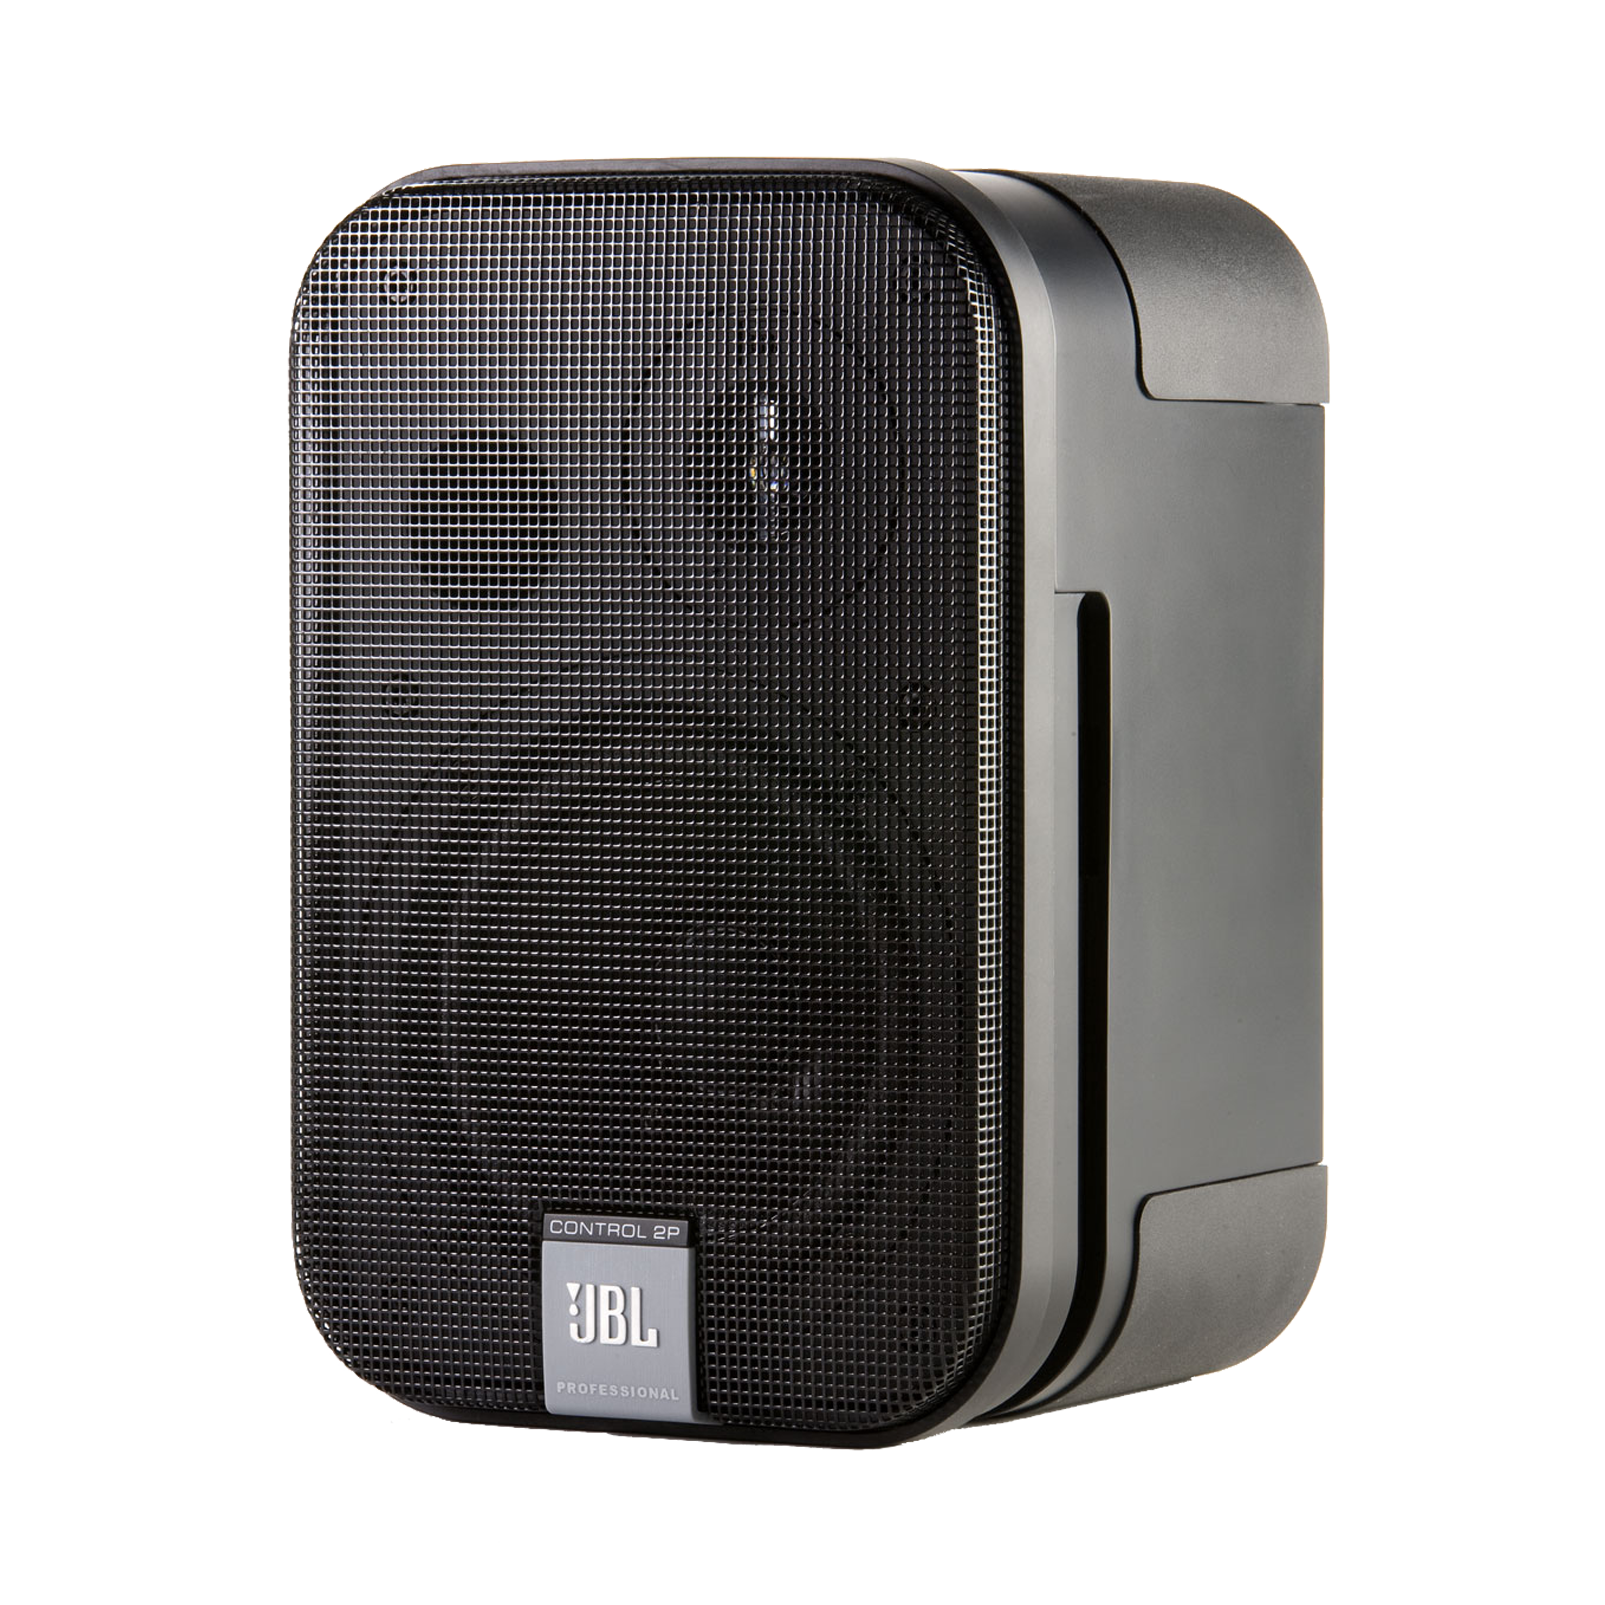 JBL Control 2P (Stereo Pair) - Black - Compact Powered Reference Monitor System - Detailshot 1